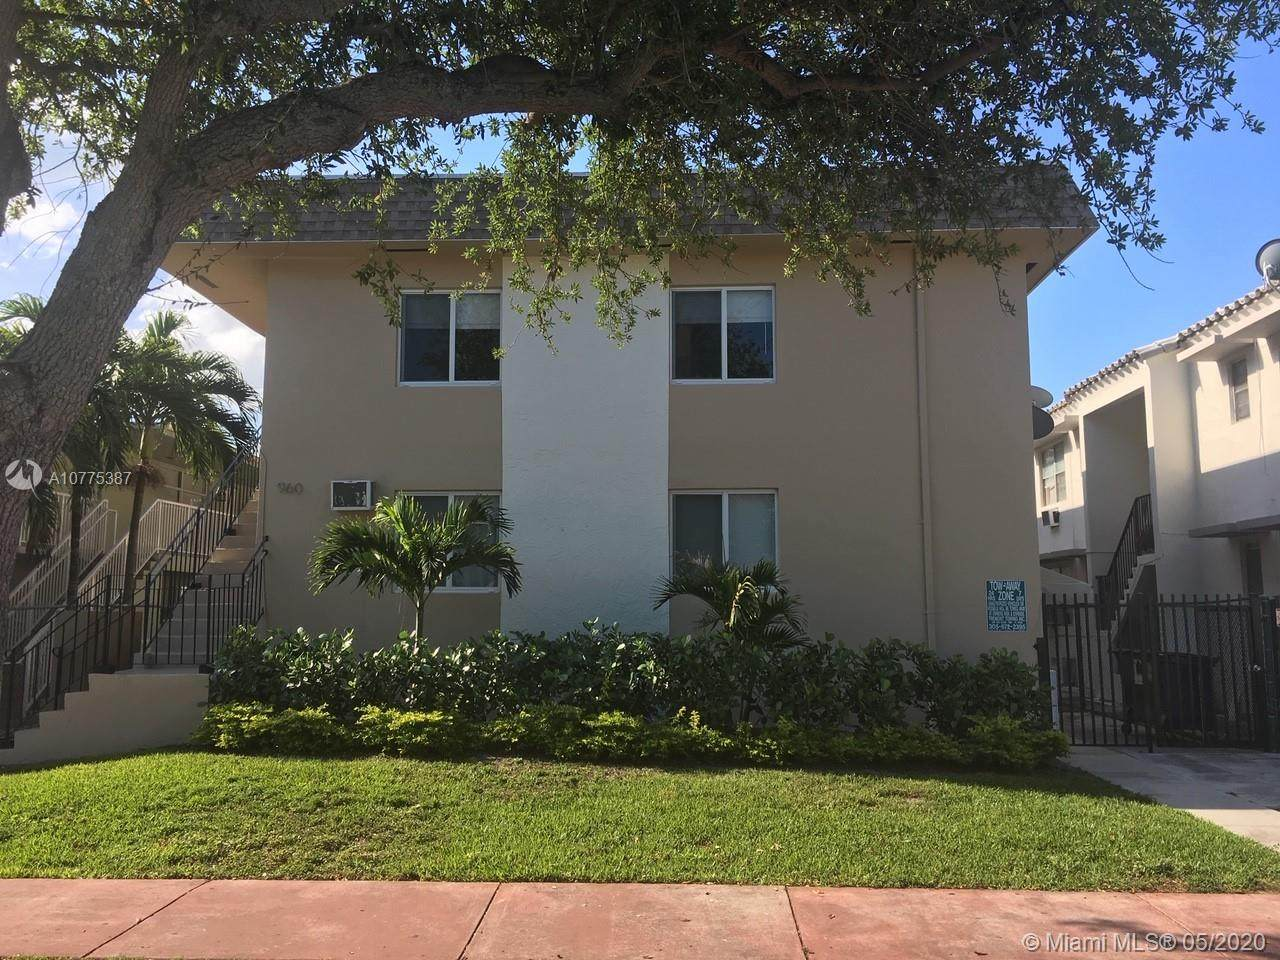 960 Biarritz Dr - Photo 1